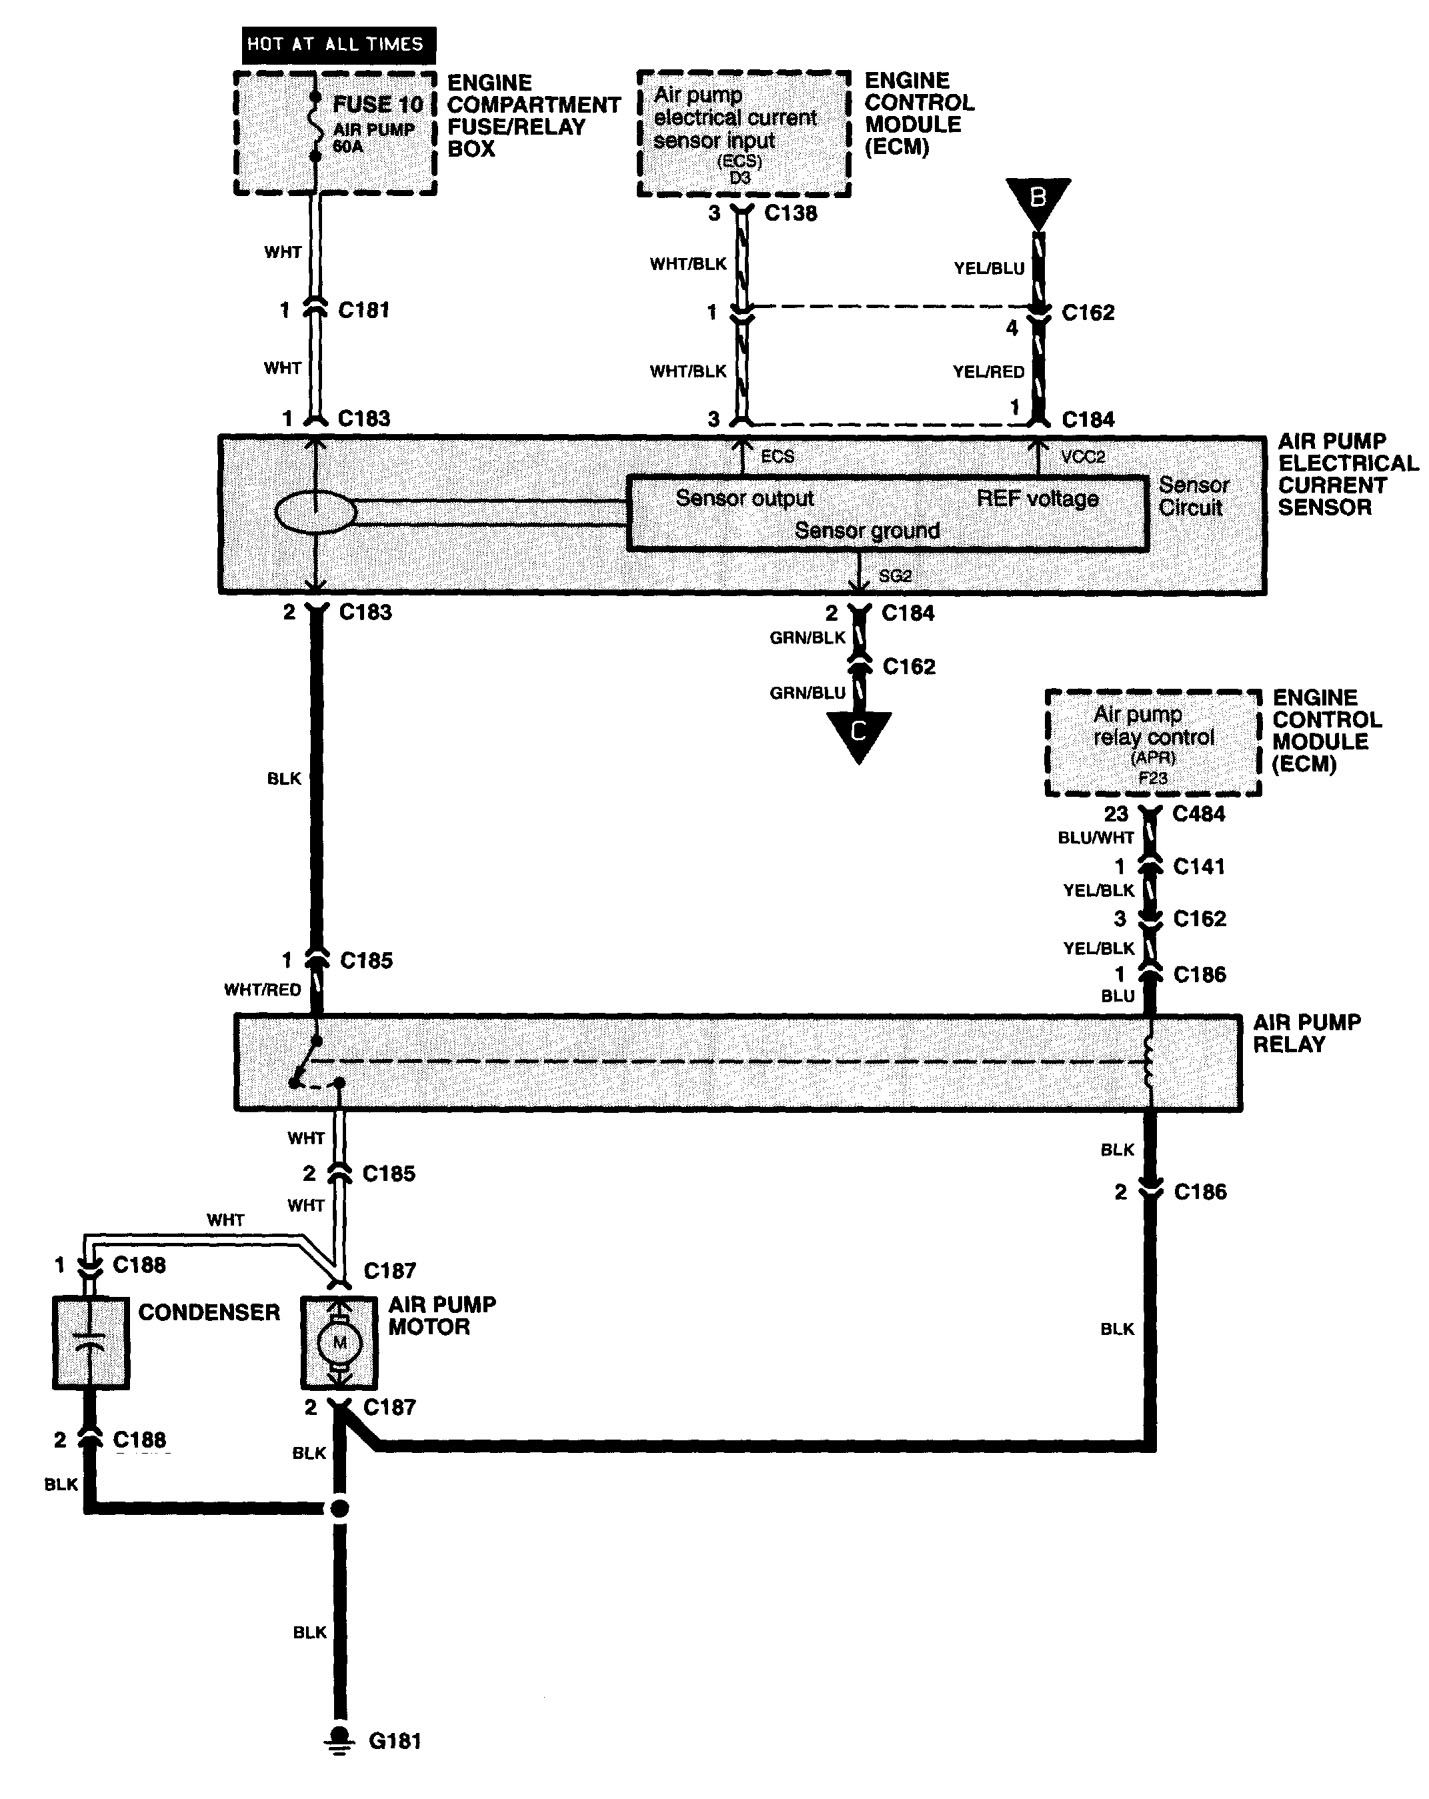 Acura NSX (1997 - 2005) - wiring diagrams - fuel controls ... on